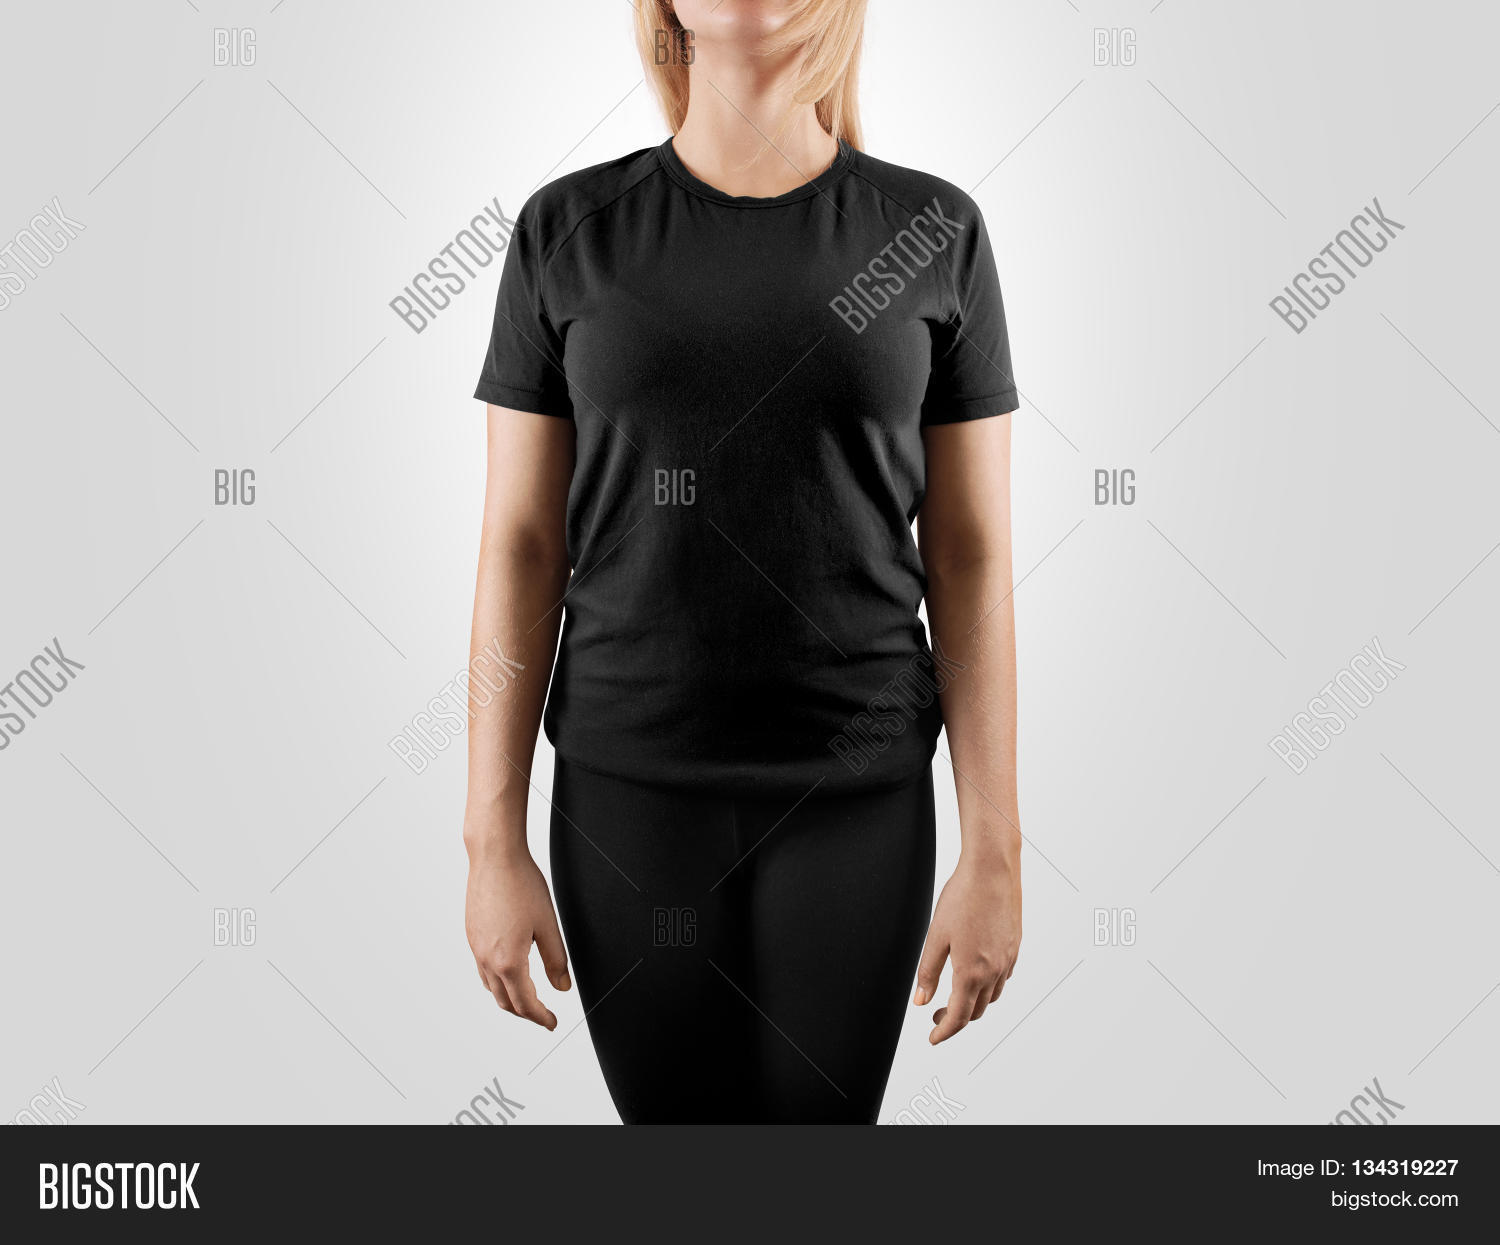 Black t shirt mock up - Blank Black T Shirt Design Mockup Isolated Women Tshirt Clear Template Front Mock